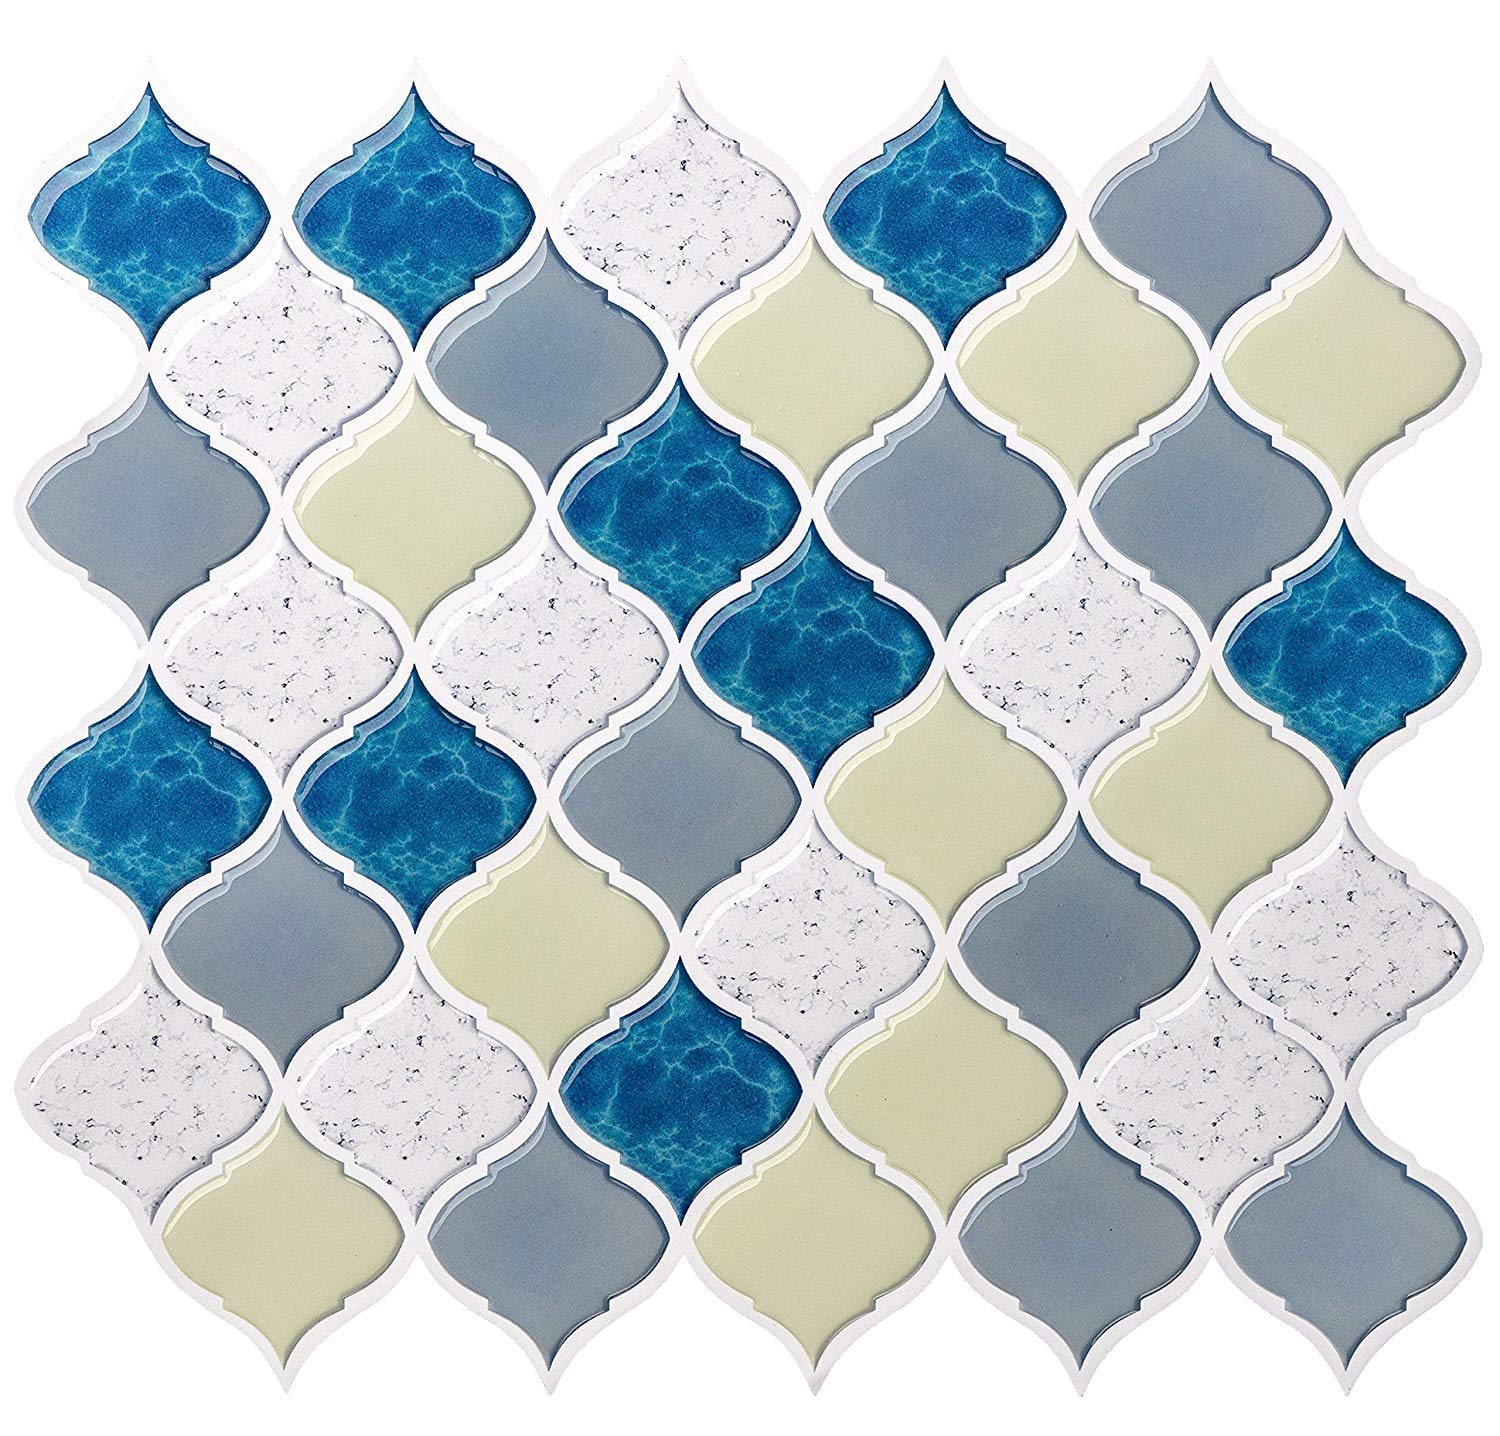 Peel and Stick Tile Backsplash for Kitchen Bathroom,Teal Arabesque Tile Backsplash,Mosaic Backsplash Sticker (8 Tiles)